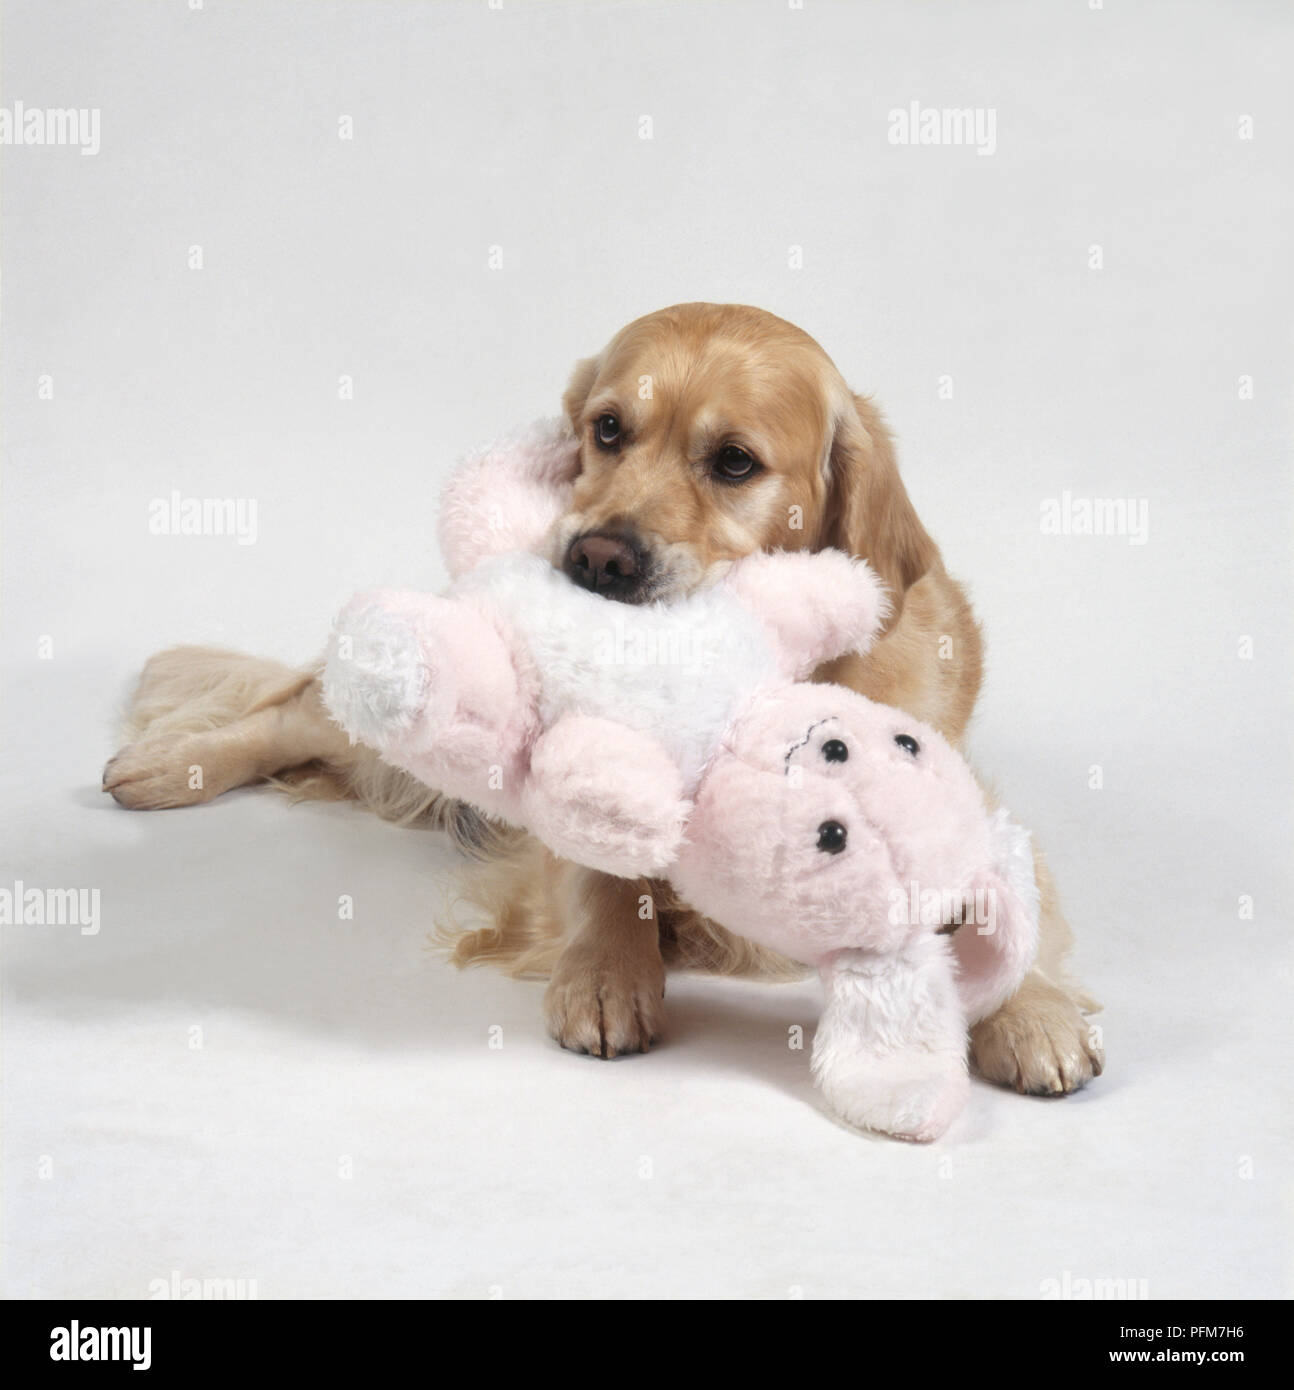 Labrador Retriever Puppy Carrying Stuffed Toy Rabbit In Its Mouth